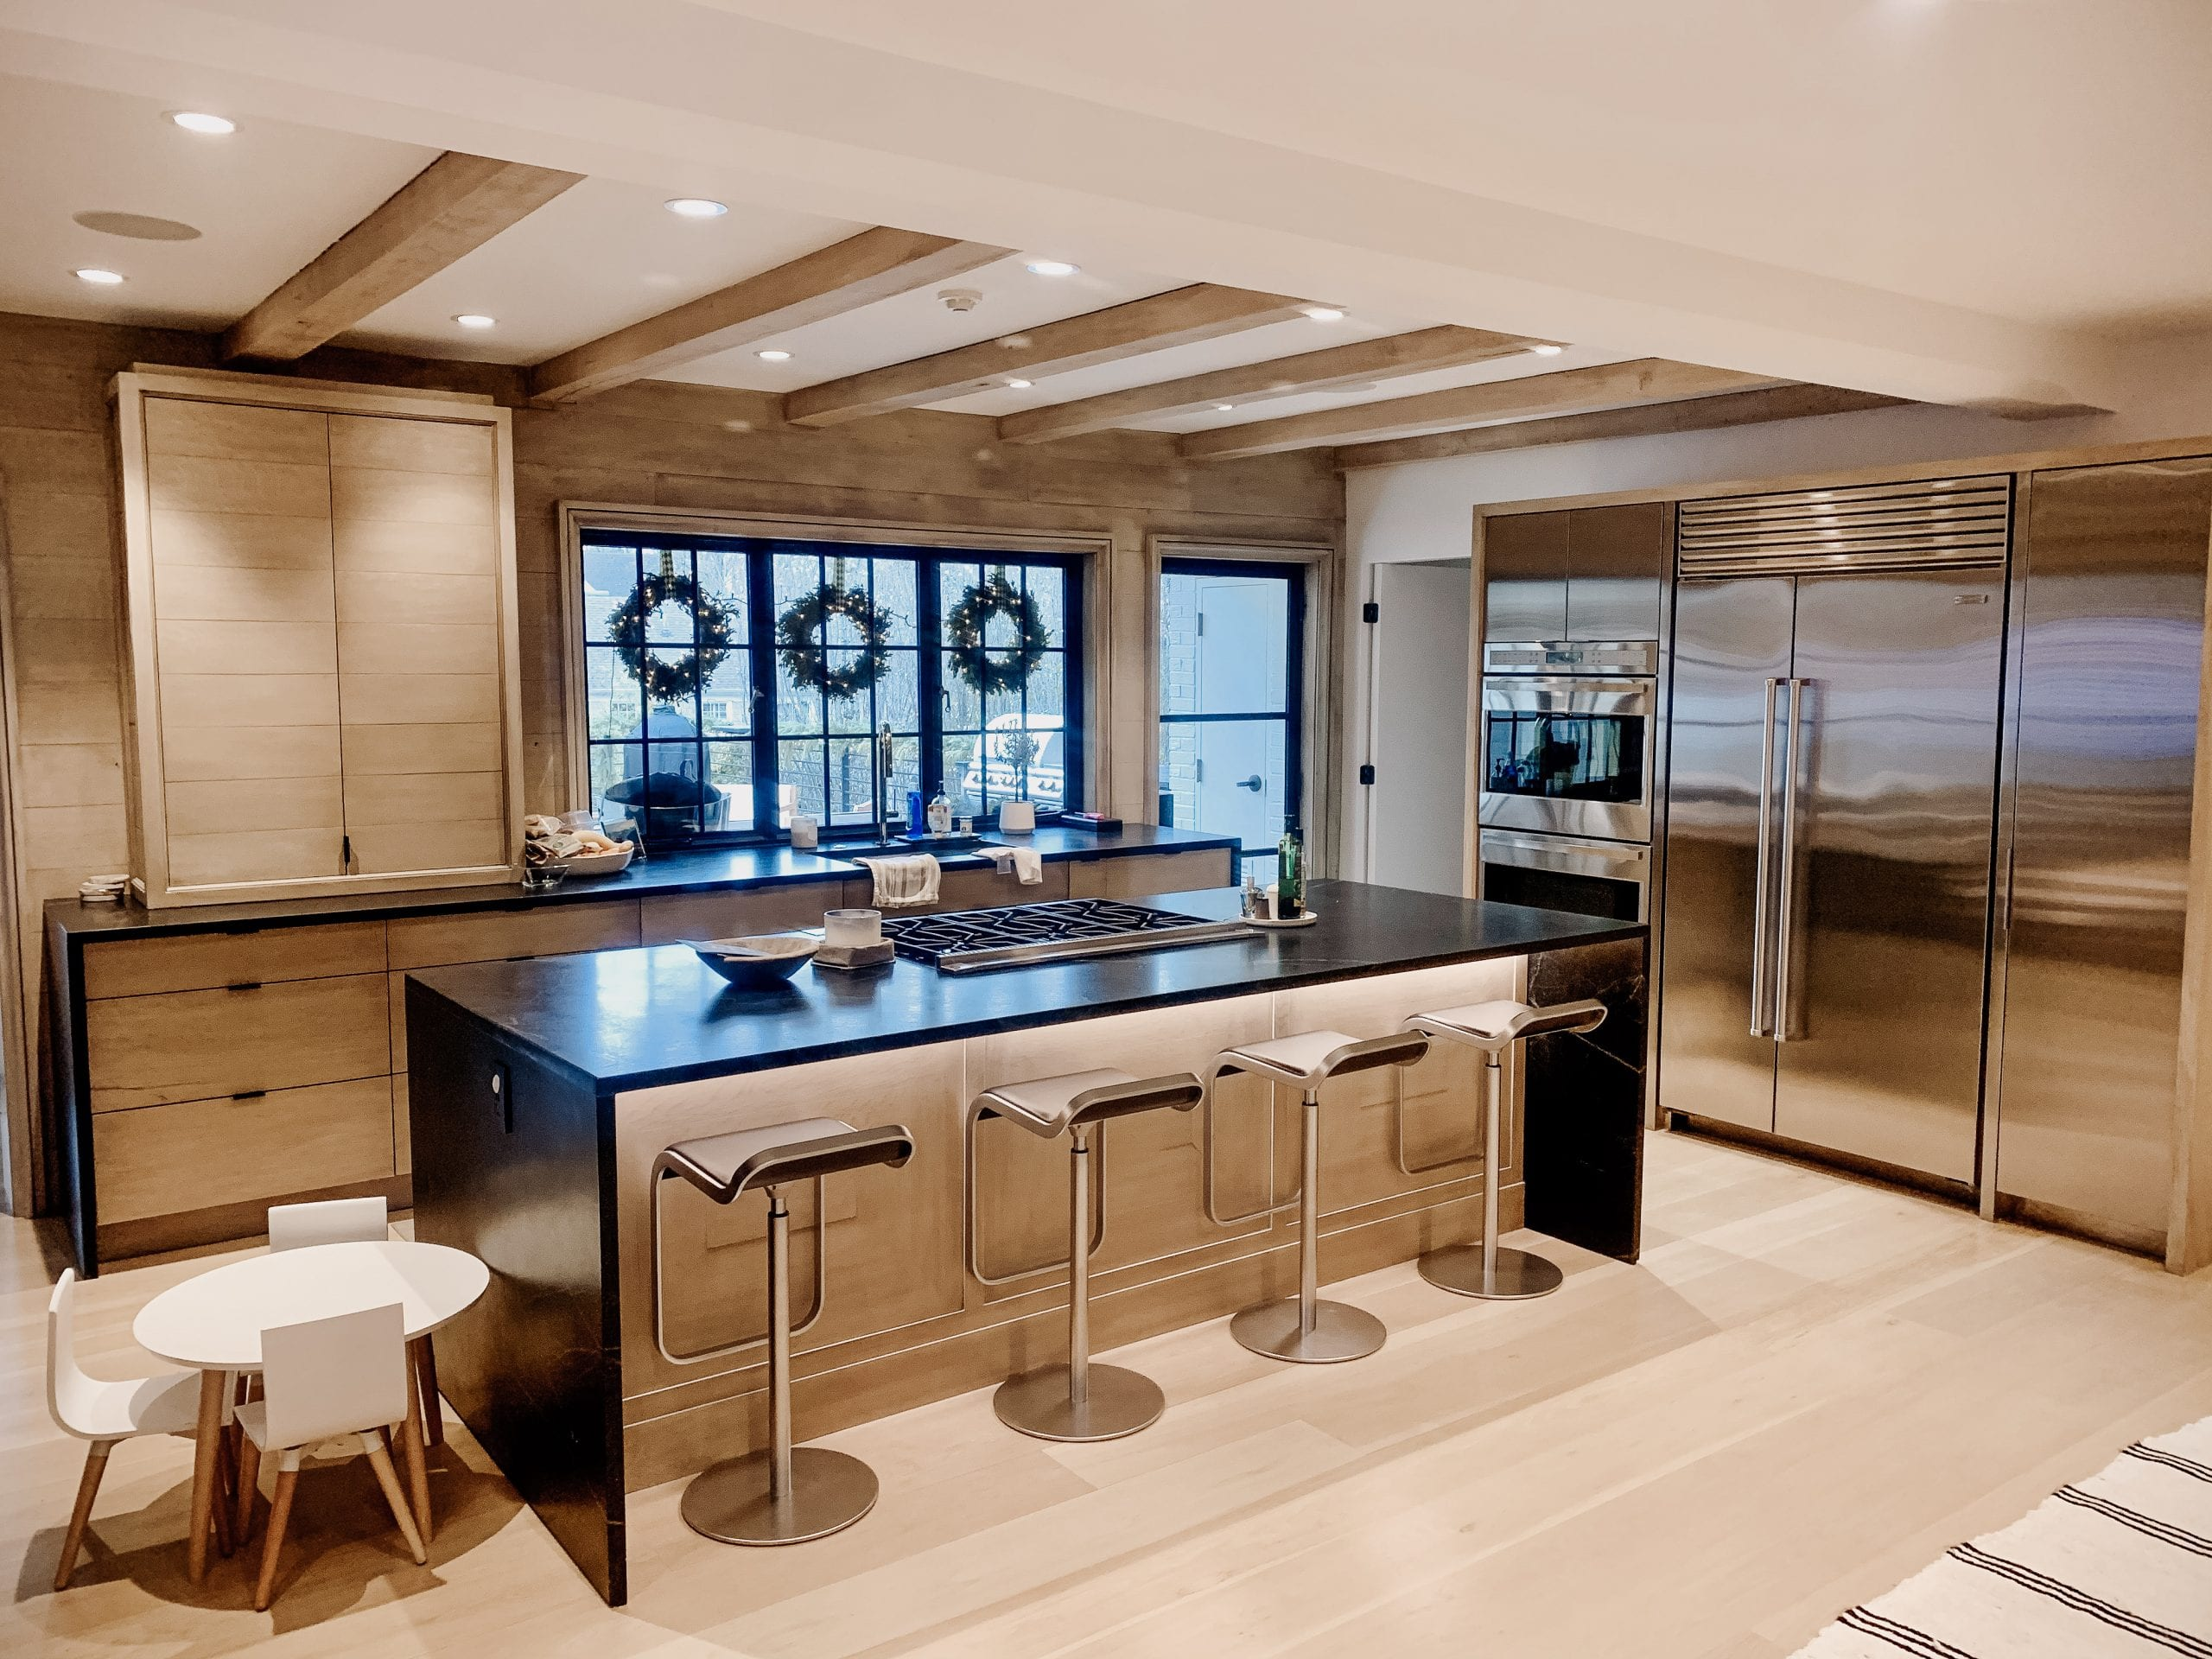 White oak and stainless steel cabinets